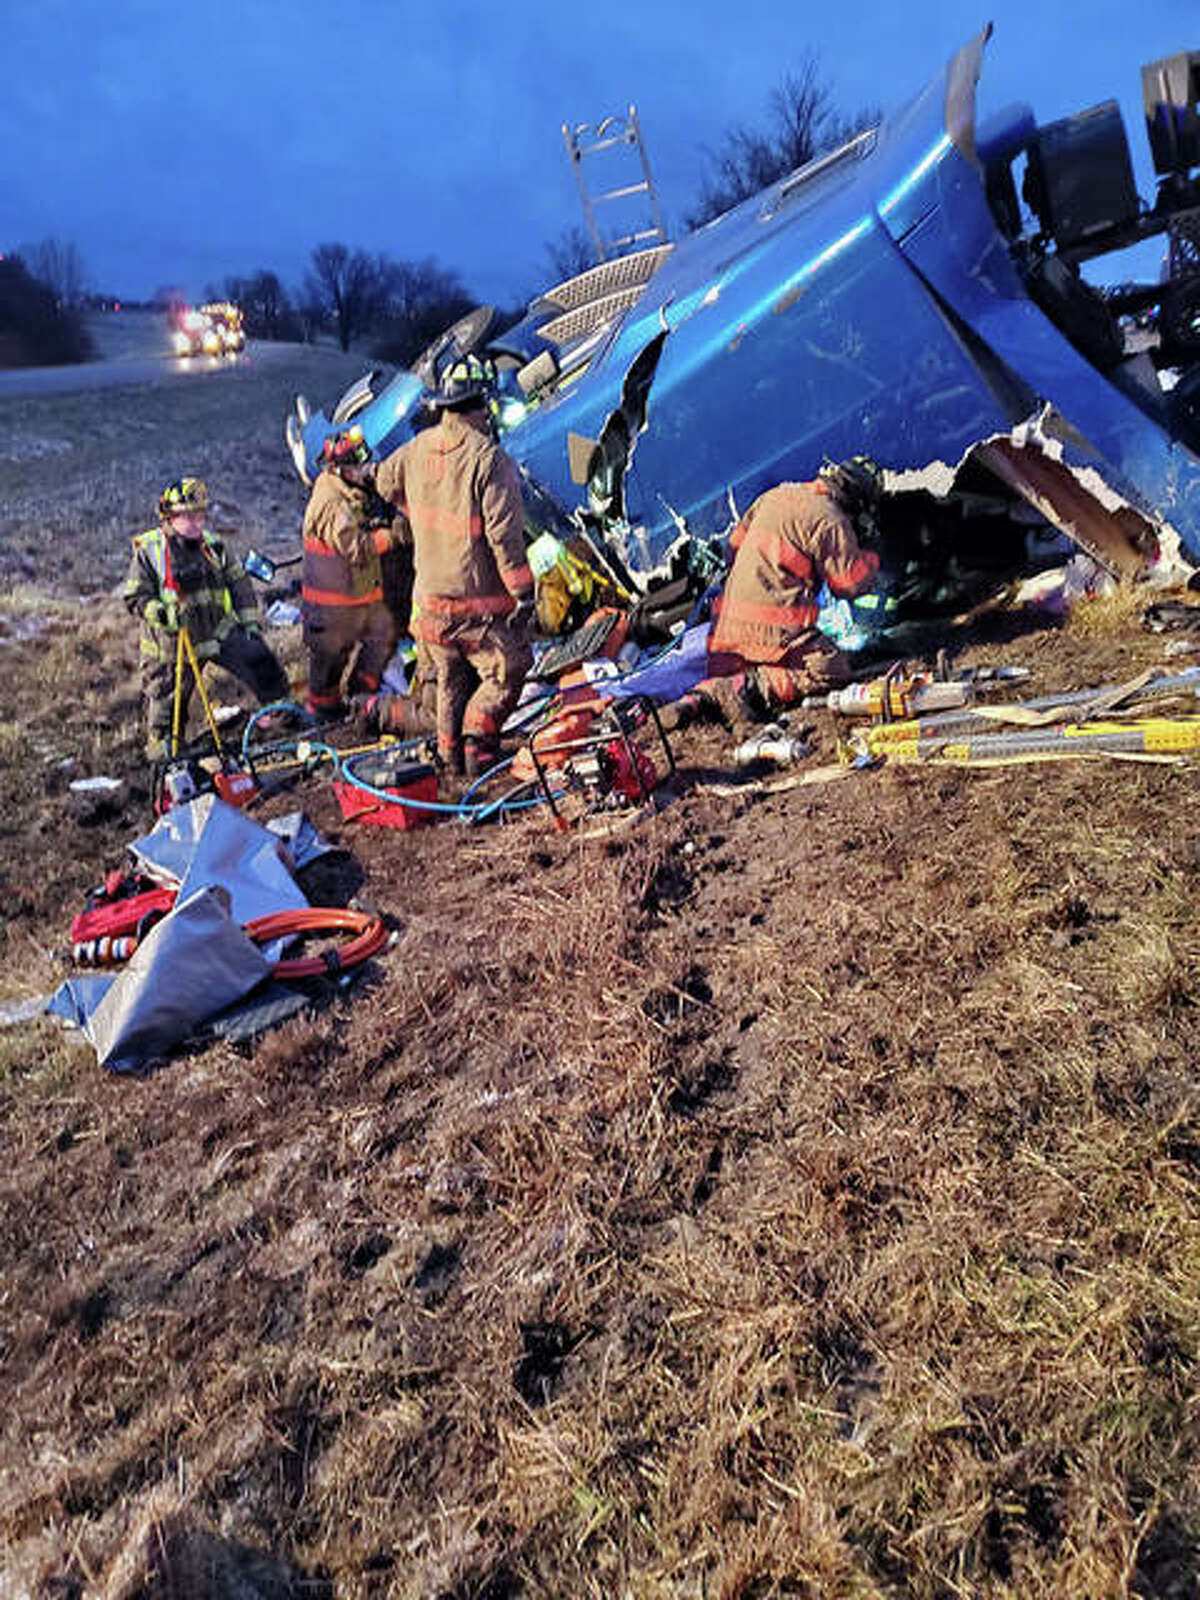 A scene from the accident on Dec. 2 at Interstates 55 and 70.